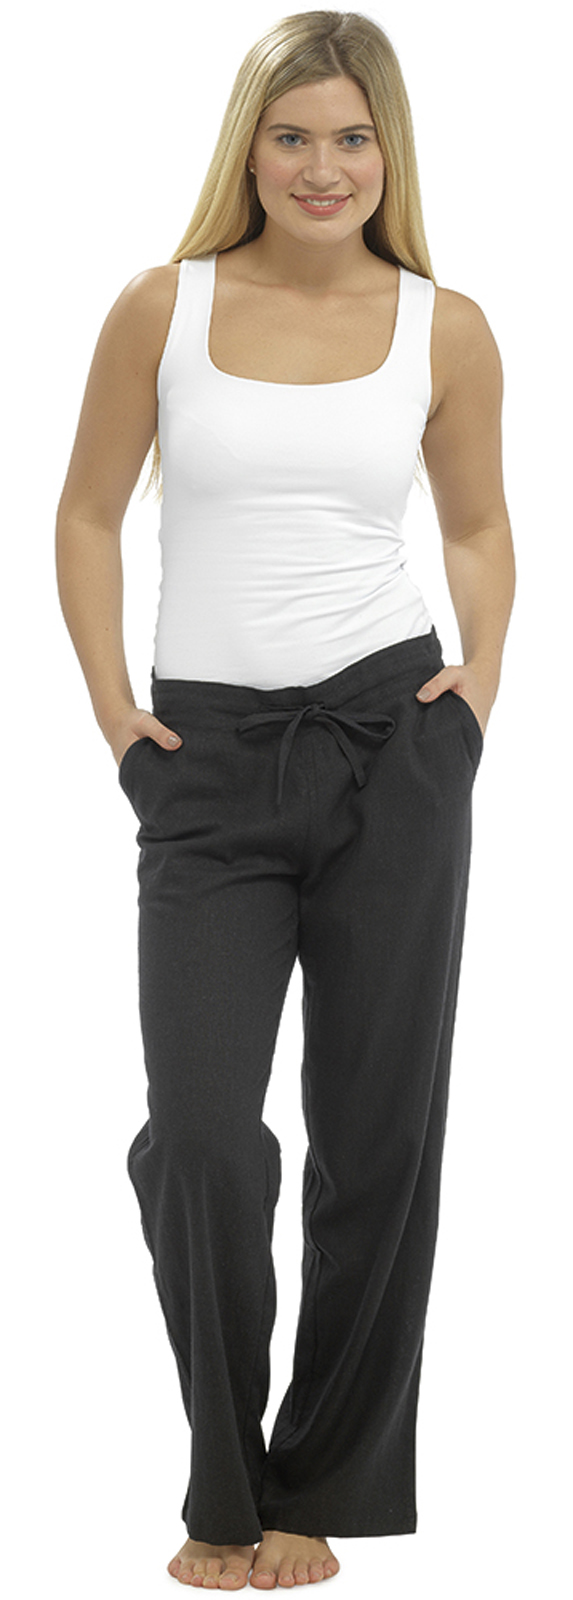 34c4d23886a Womens Linen Trousers Cropped Capri or Full Length Pants Casual Fit ...